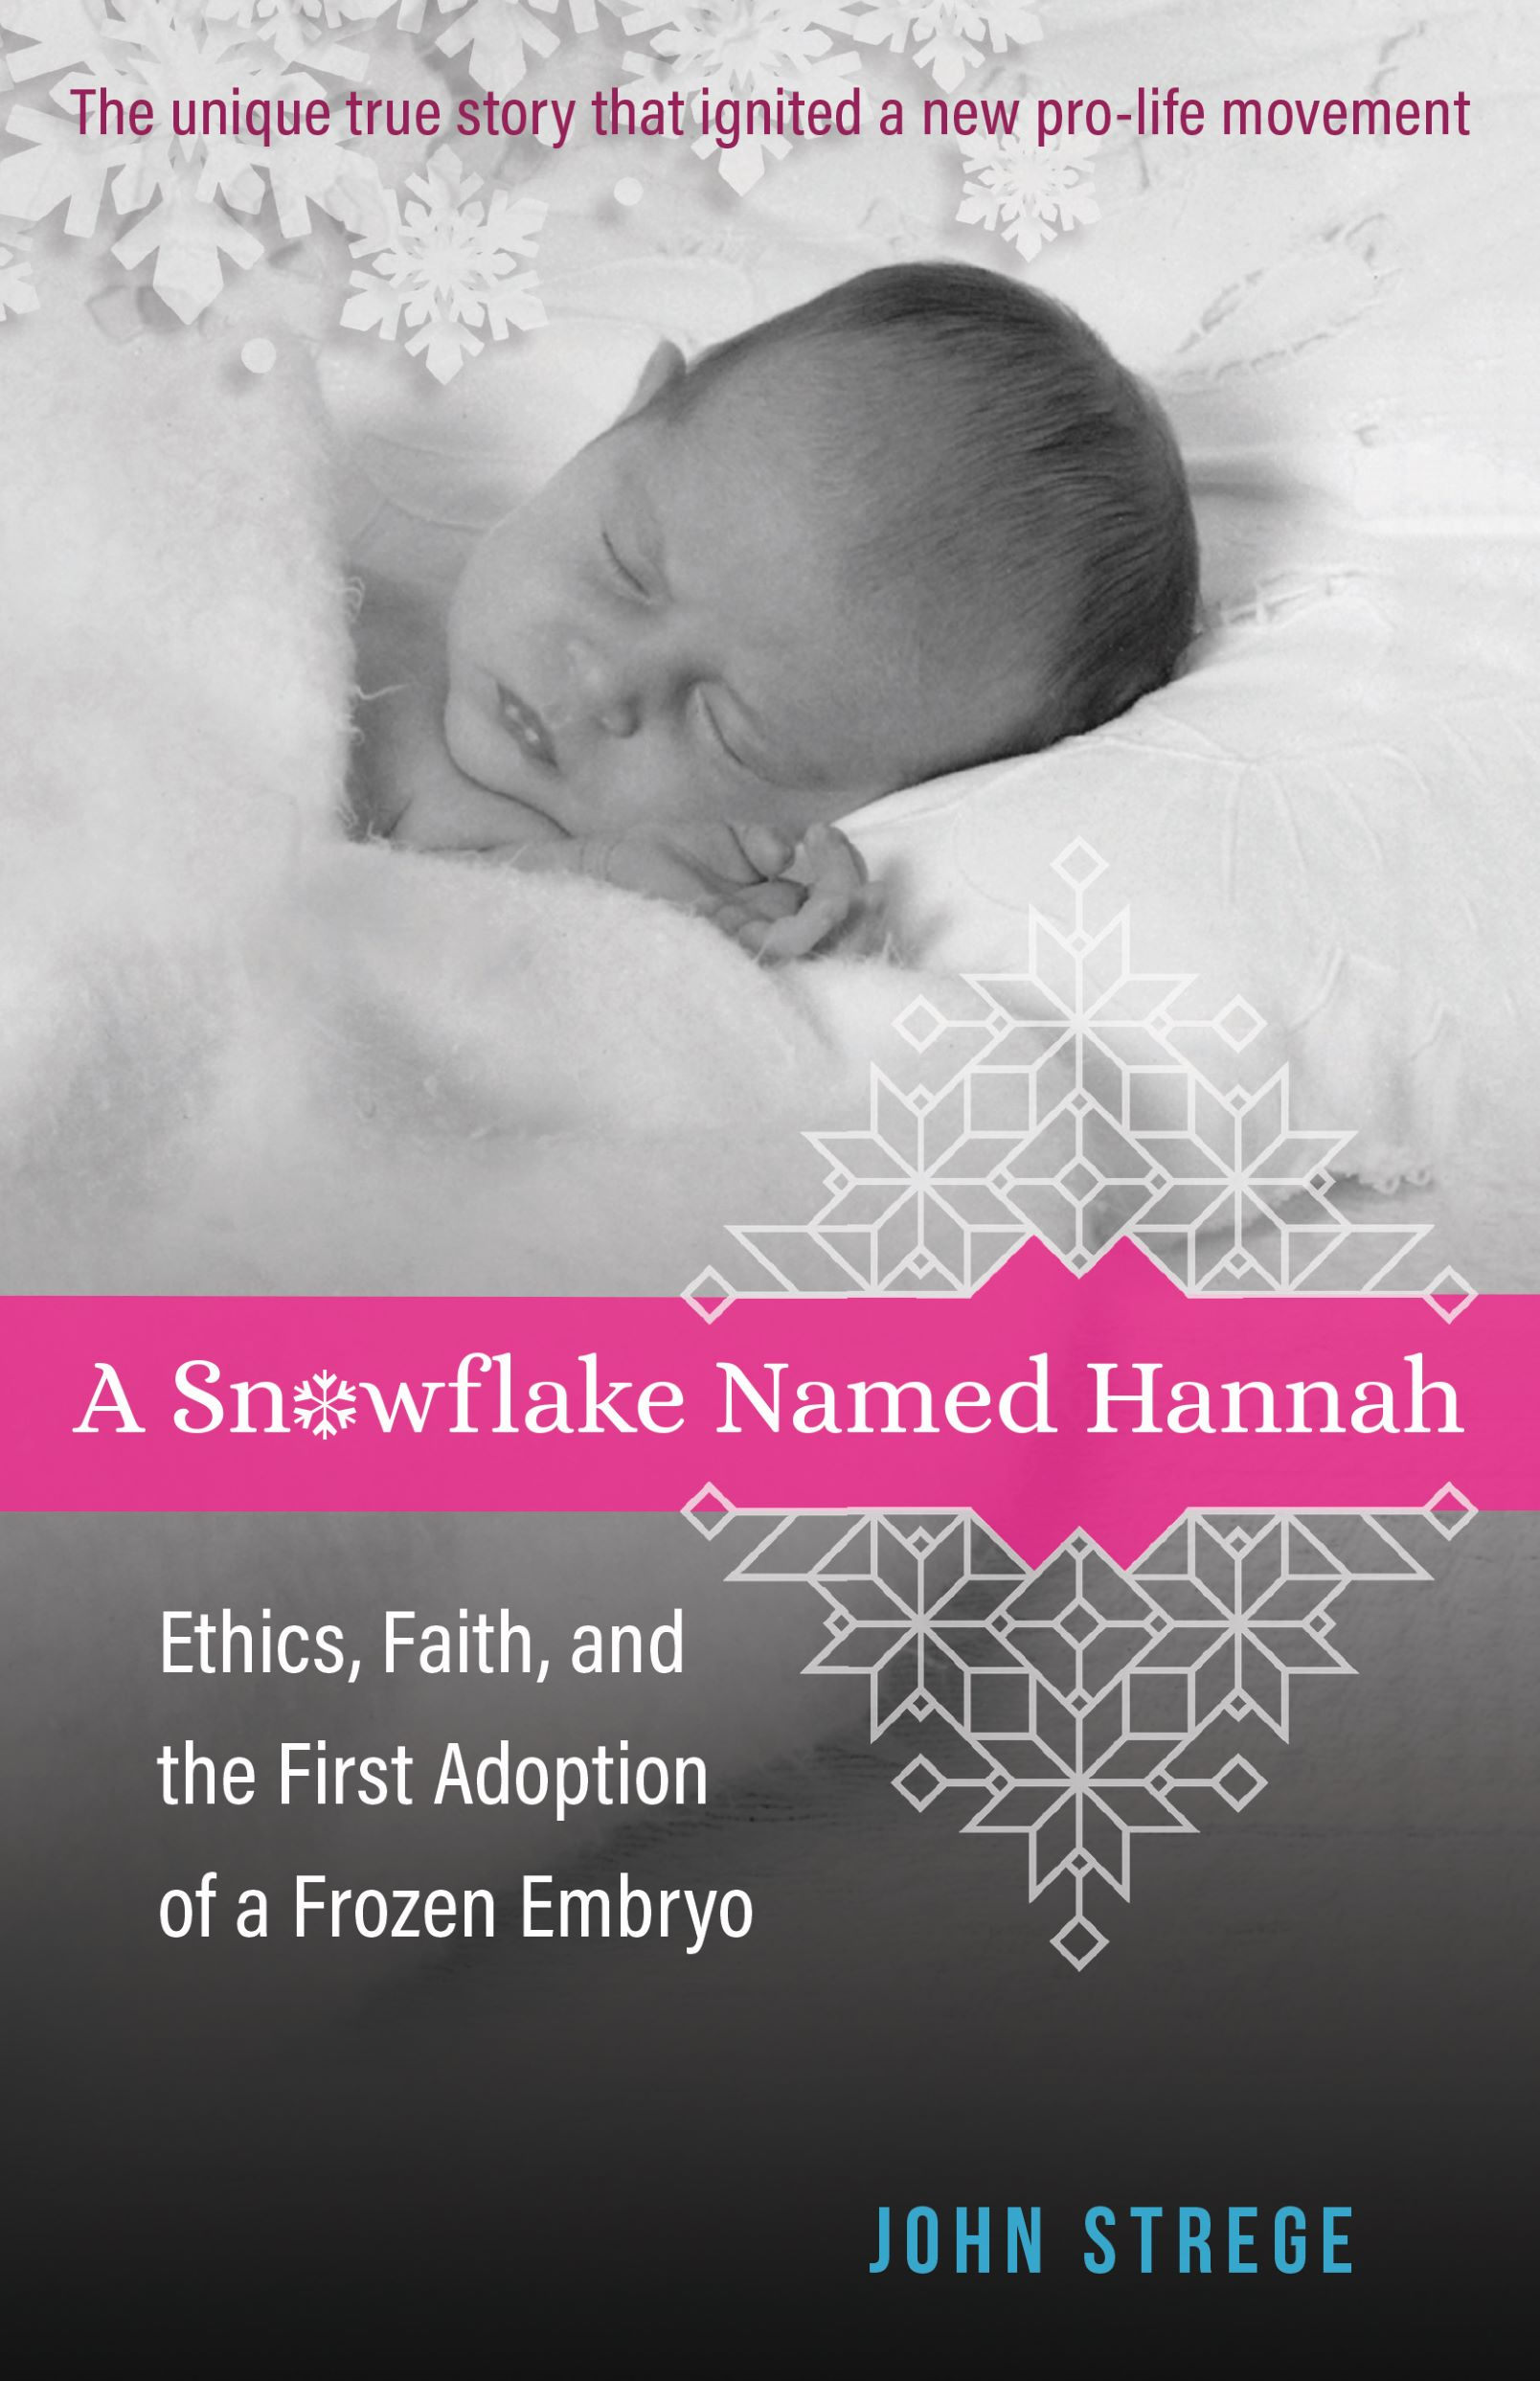 A Snowflake Named Hannah